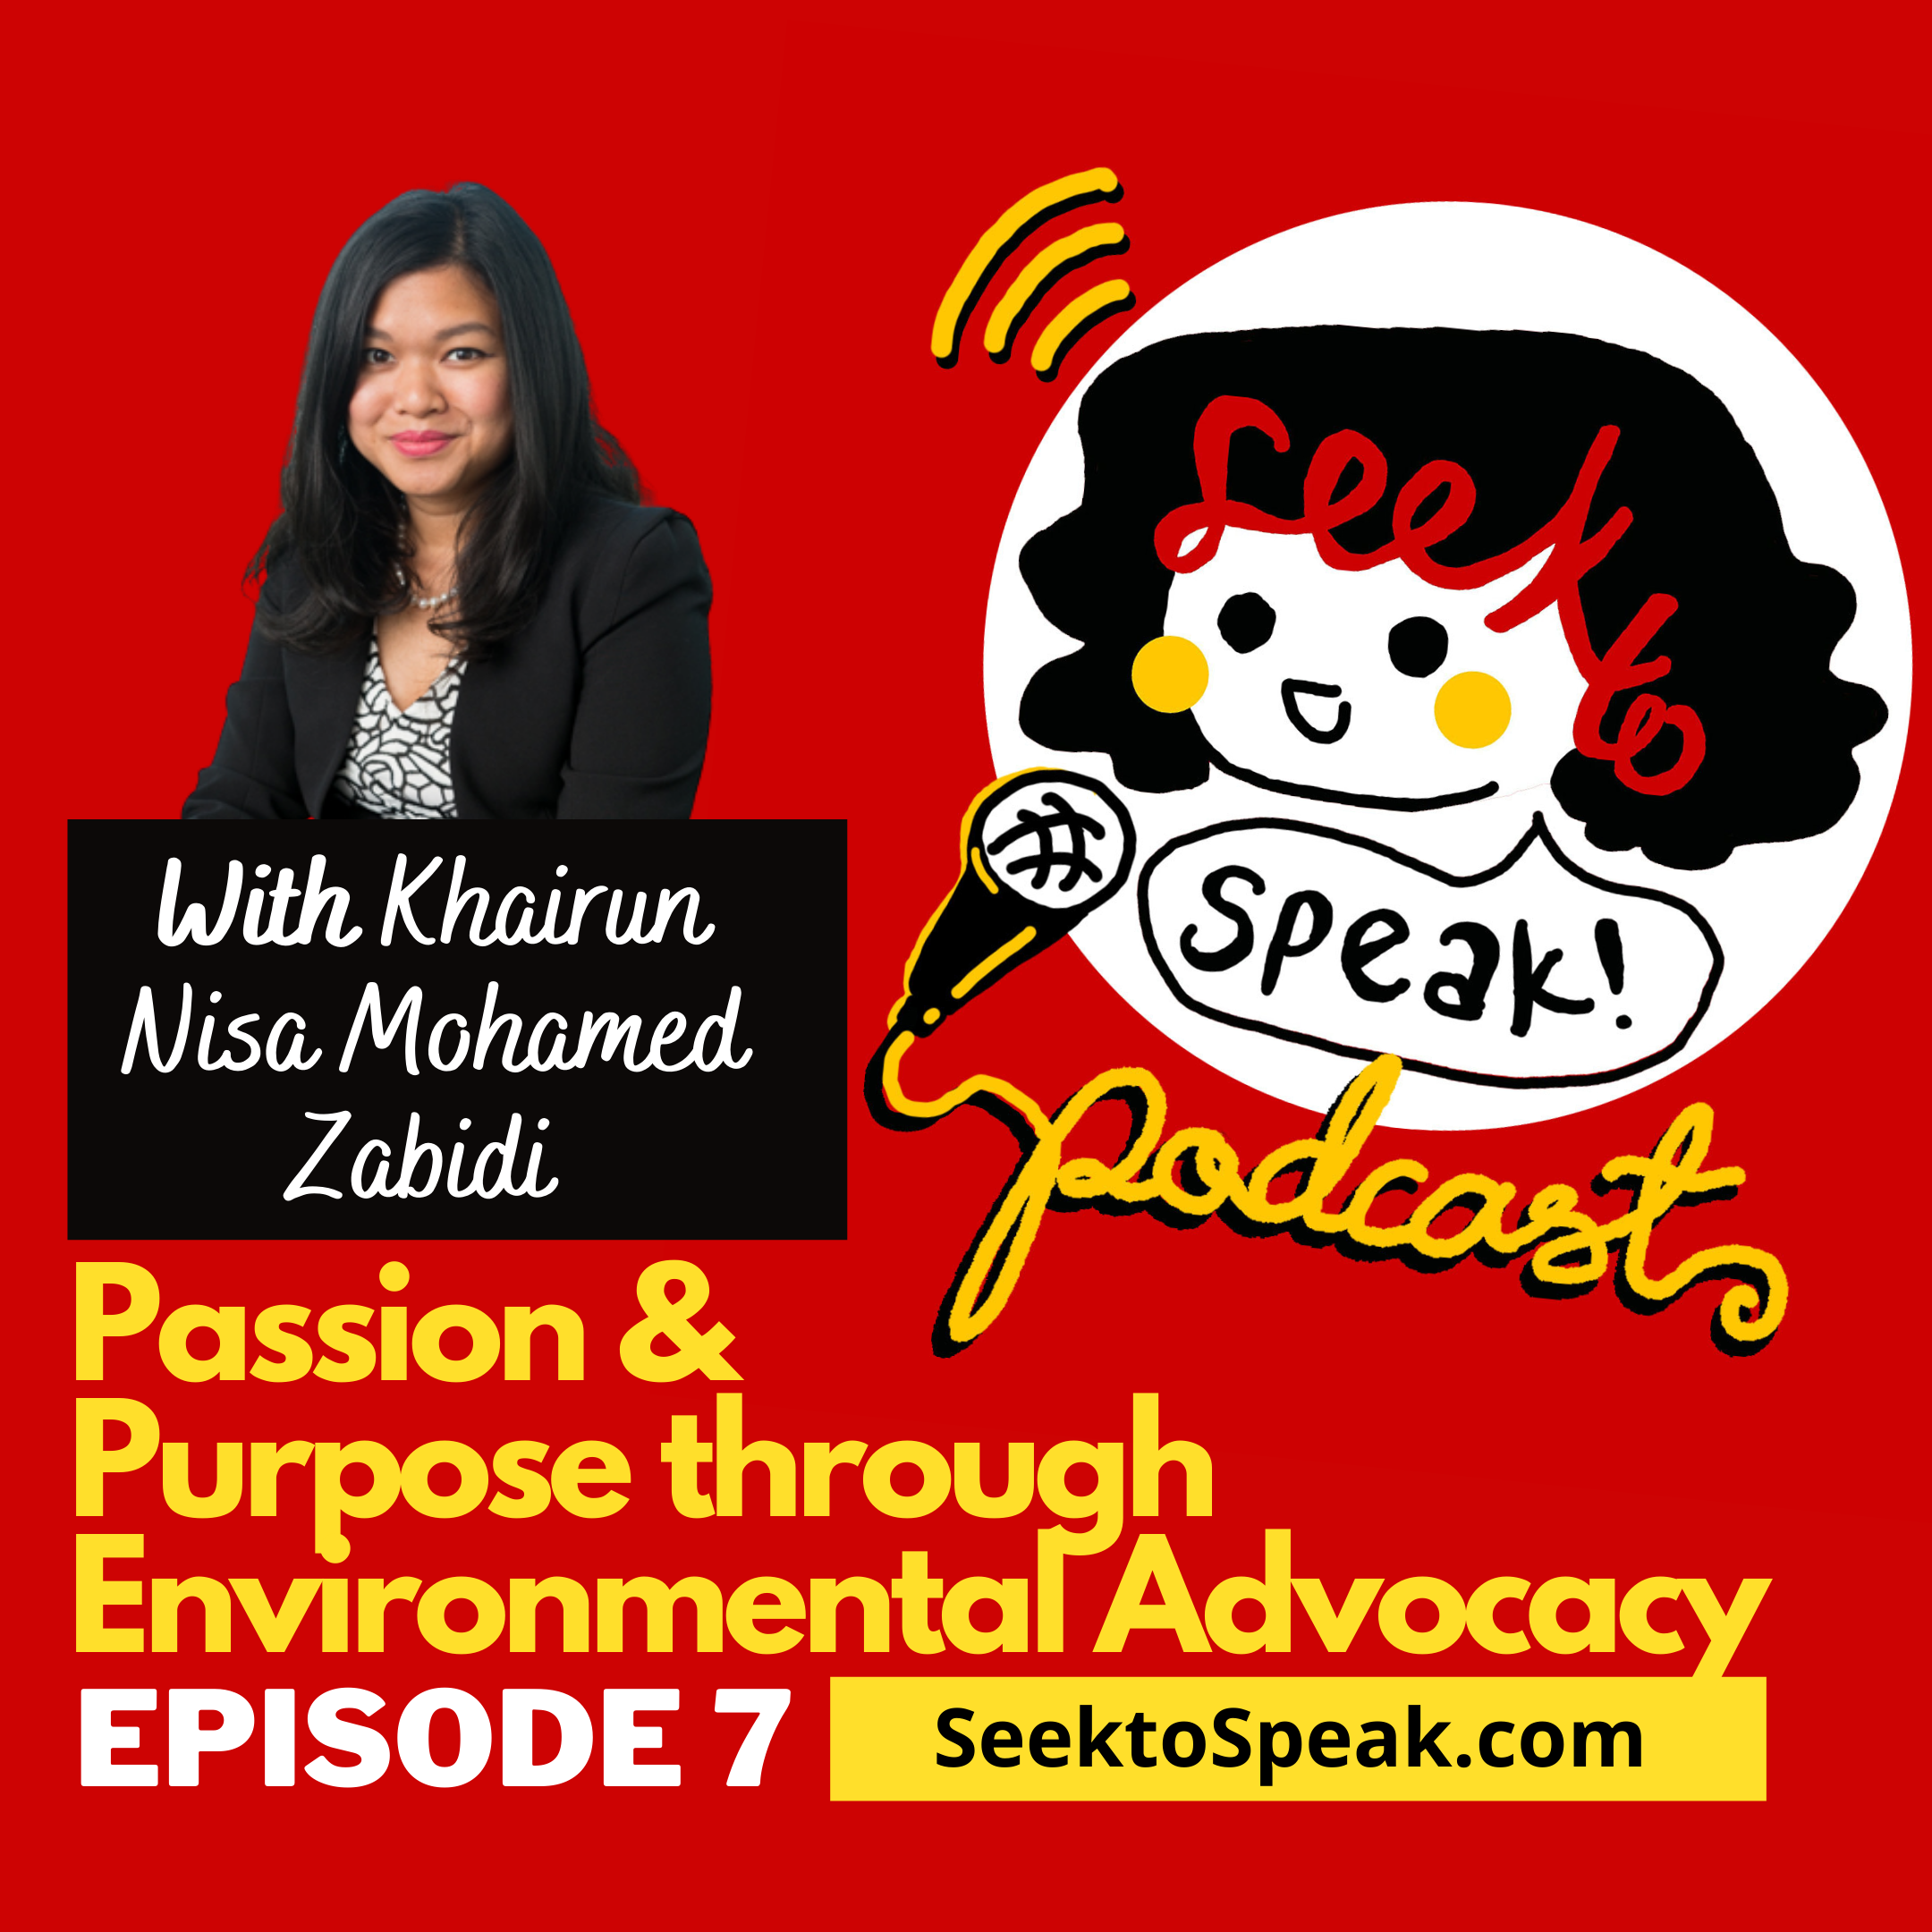 Podcast Episode 7 –   Passion and Purpose through Environmental Advocacy with Khairun!